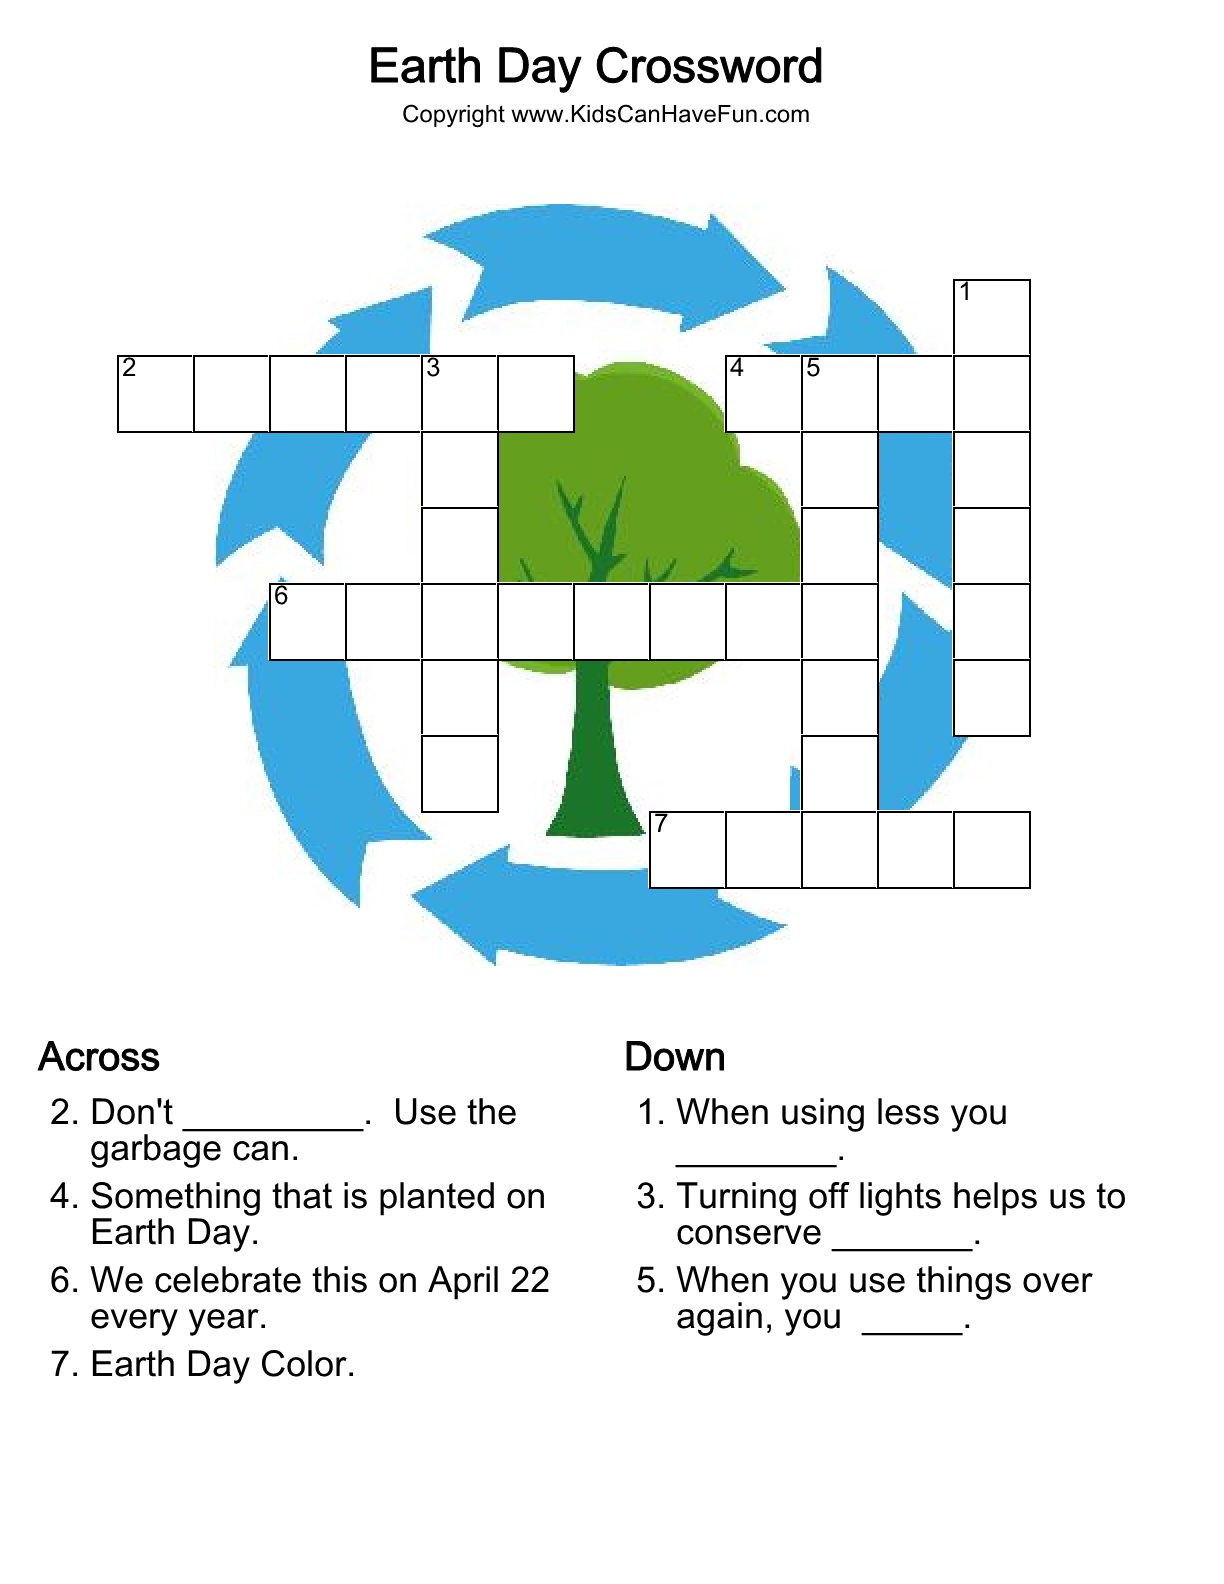 Earth Day Crossword Puzzle Dscanhavefun